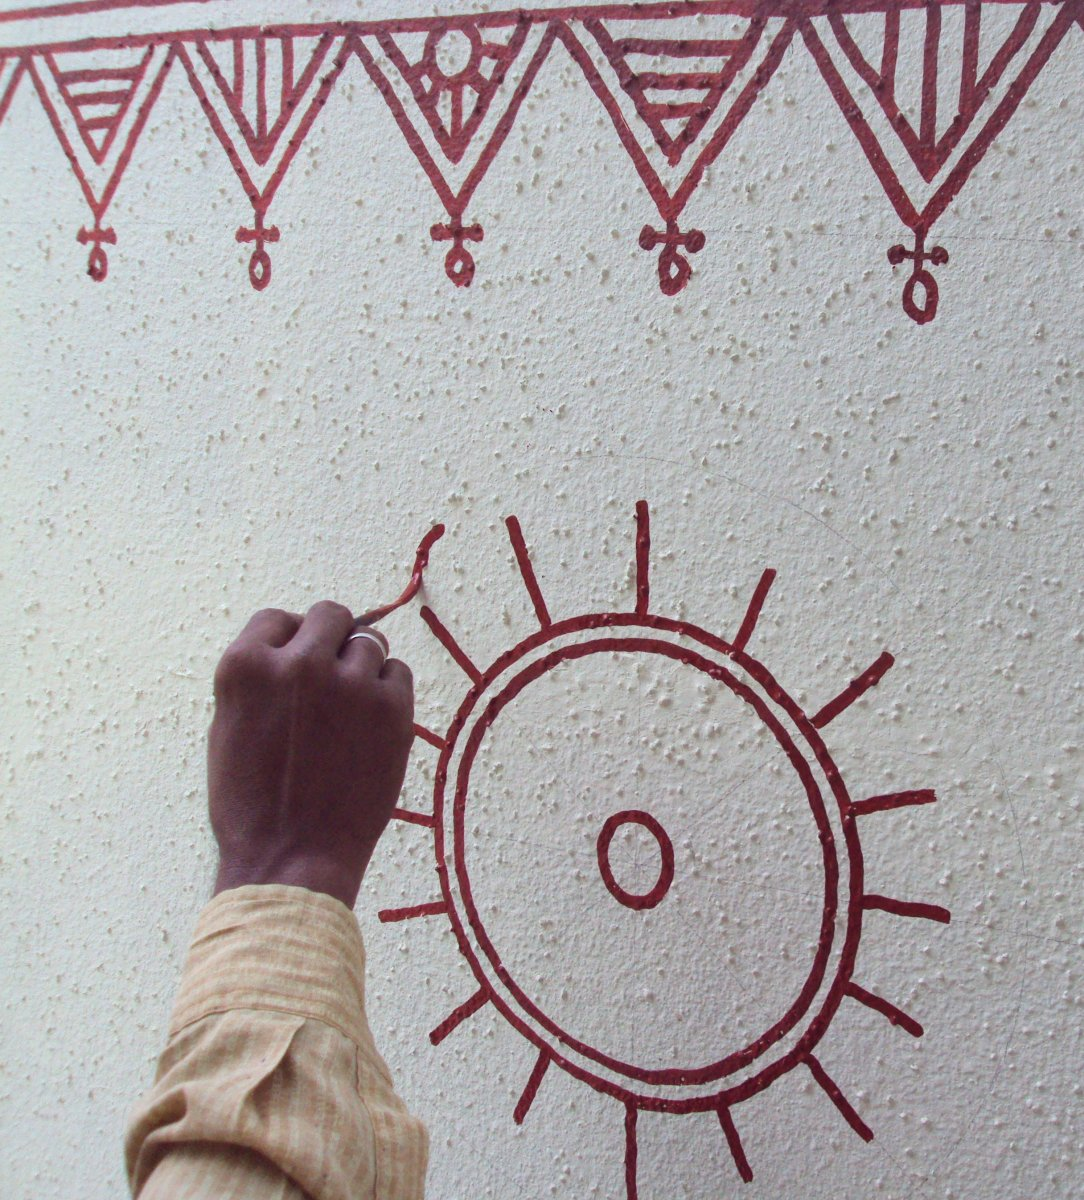 Artist painting a freehand circular motif